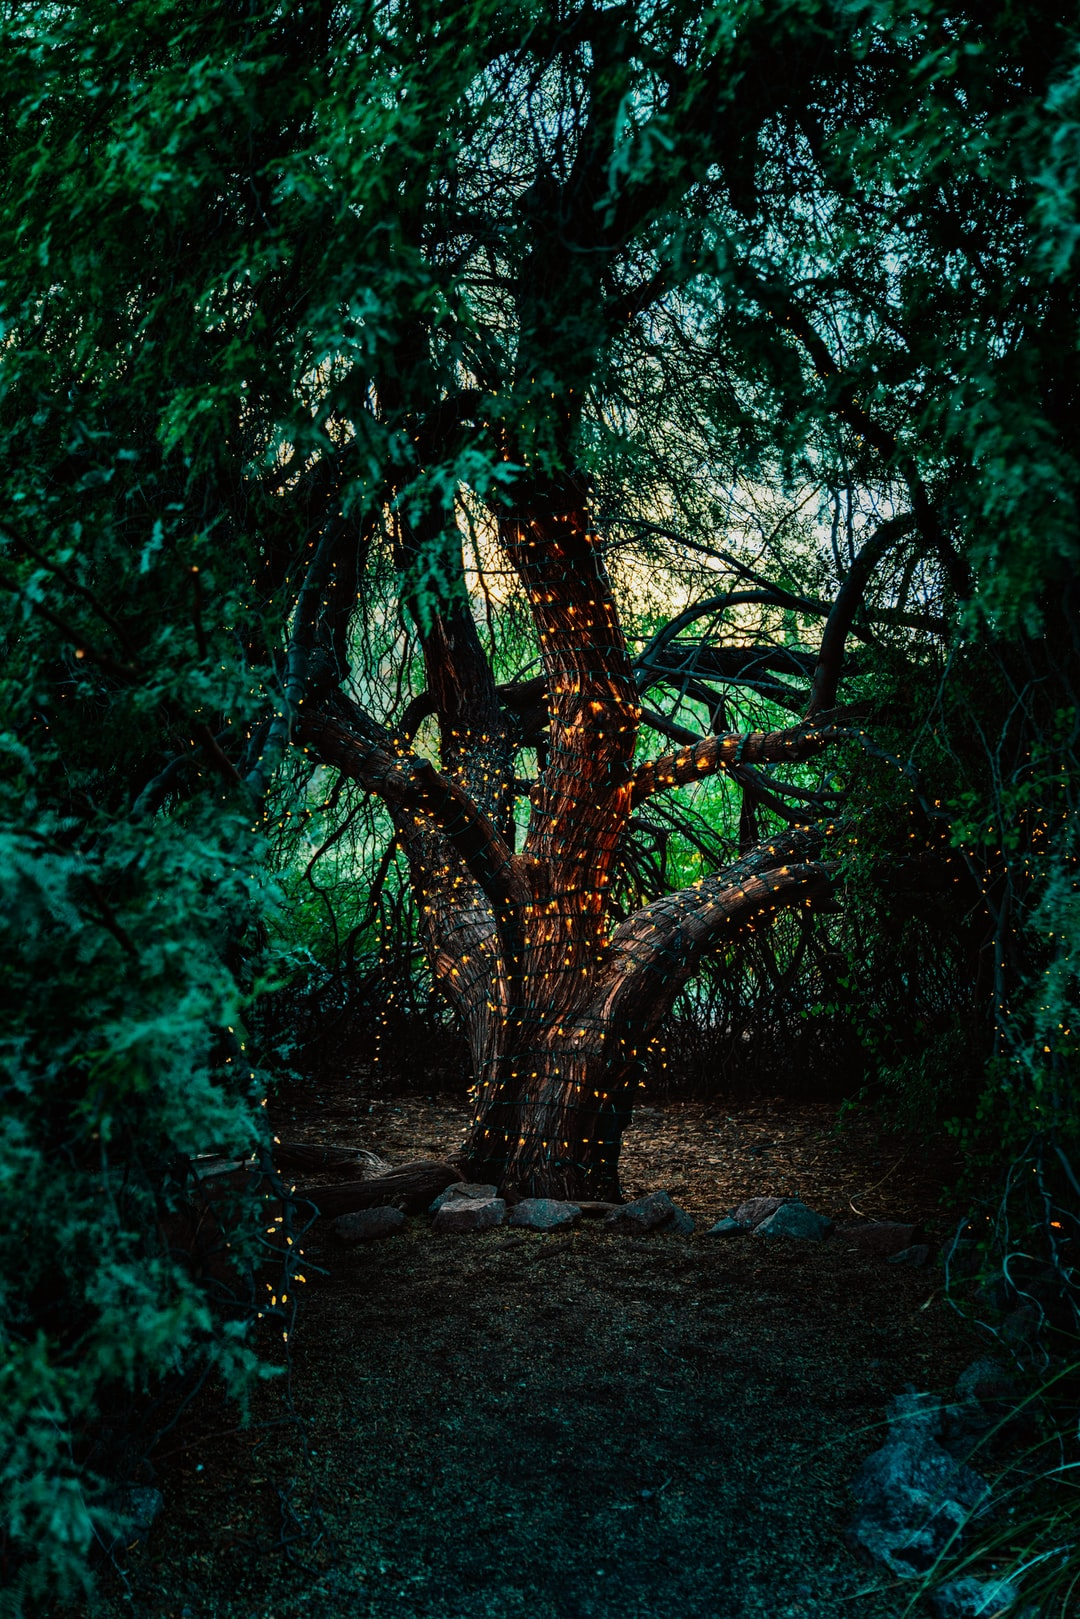 Bright orange lights wrapped around a tree look like fireflies in this dark coniferous forest.